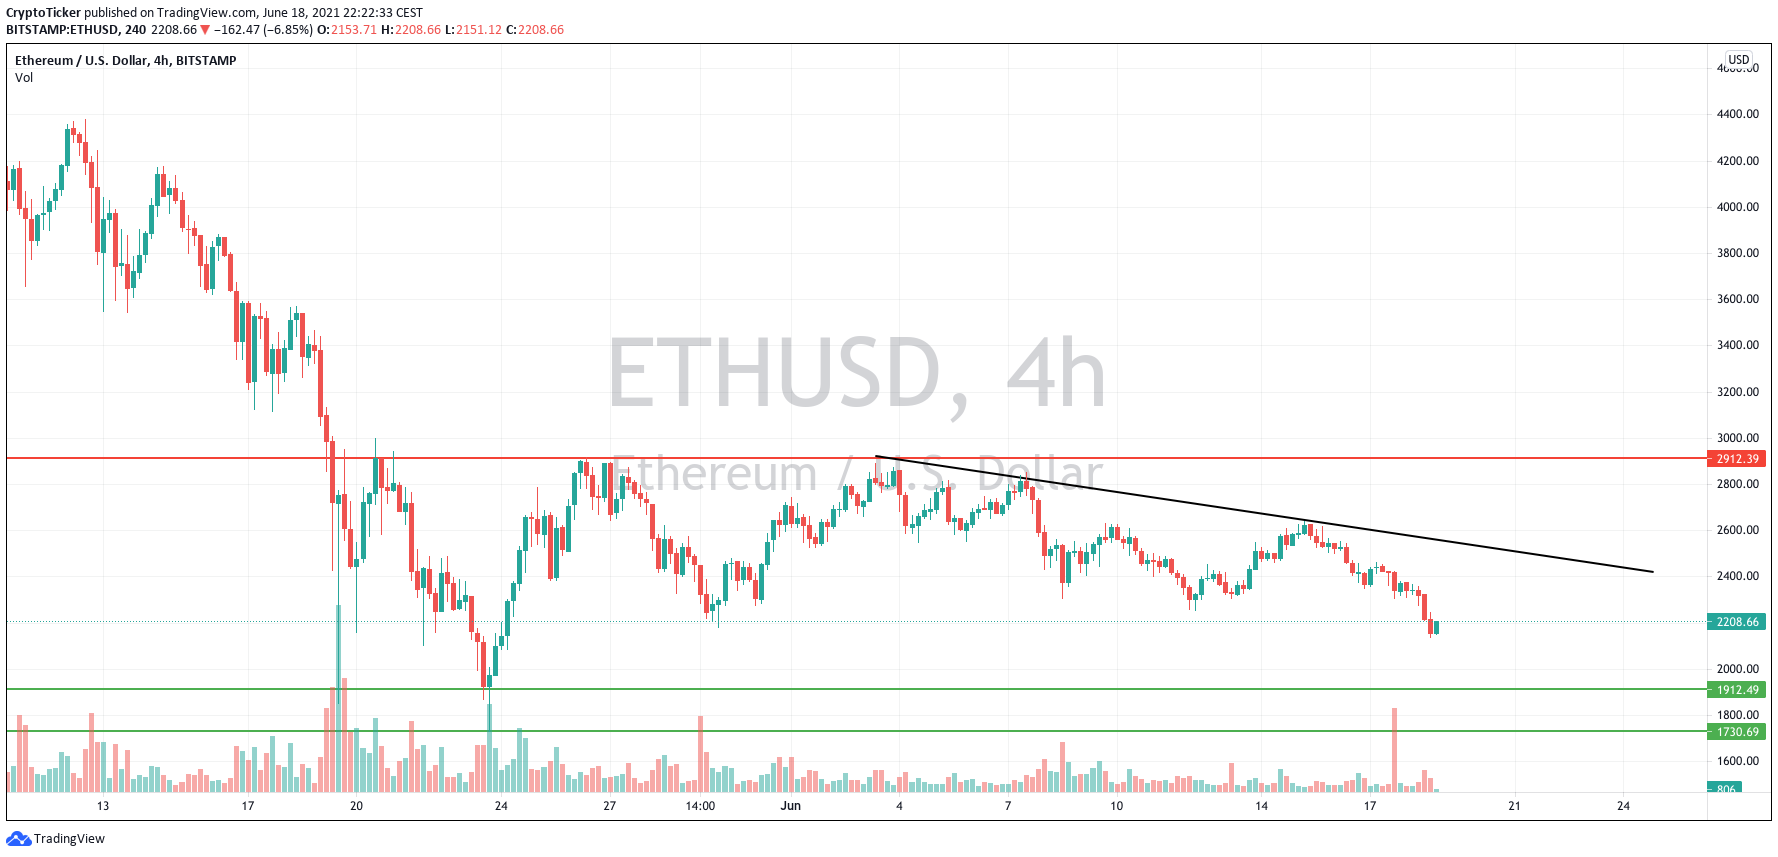 Shoud you Buy Eth today? 4-hours chart showing a short-term downtrend